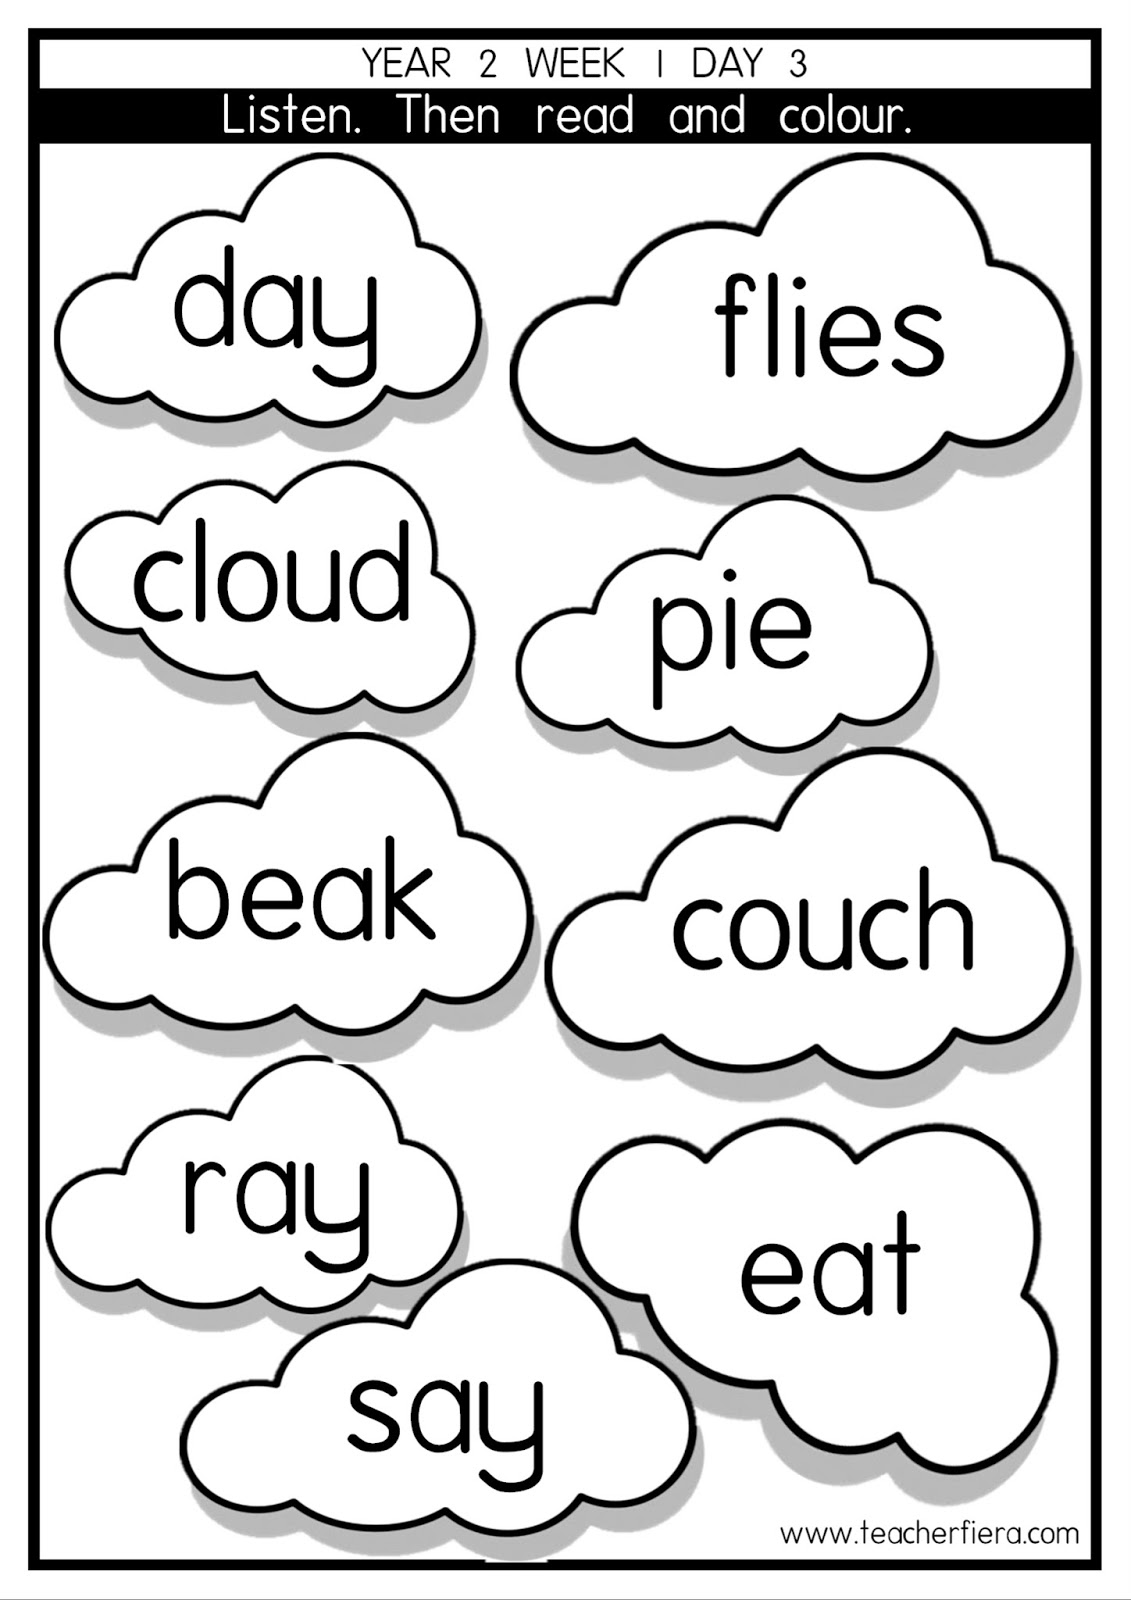 Teacherfiera Year 2 Phonics Lessons Week 1